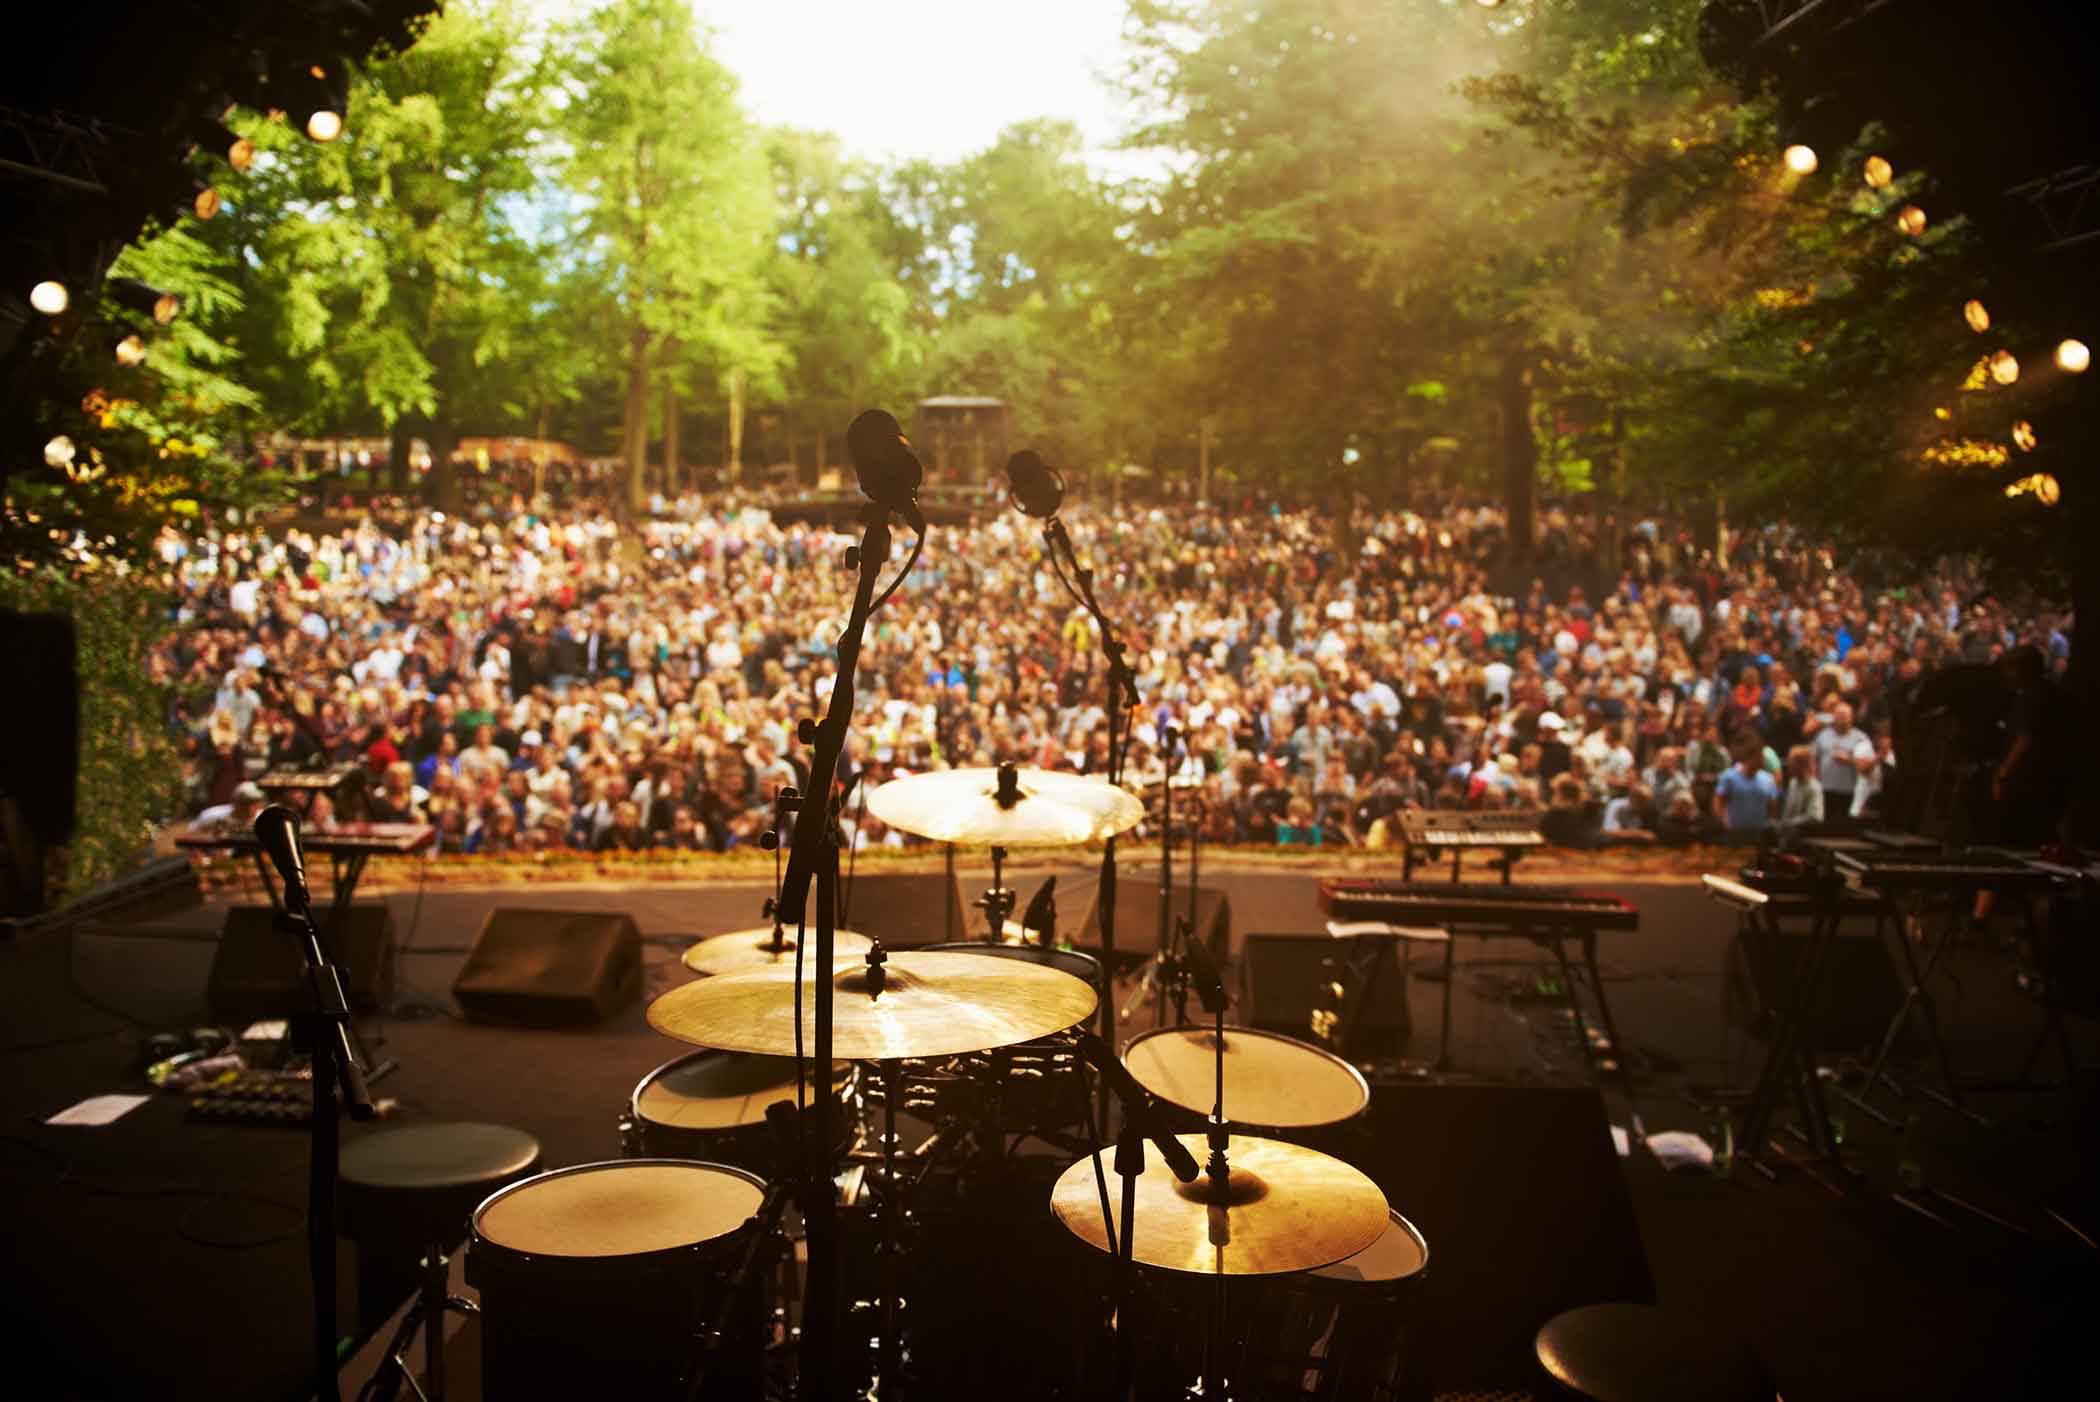 View from a stage looking out on crowd